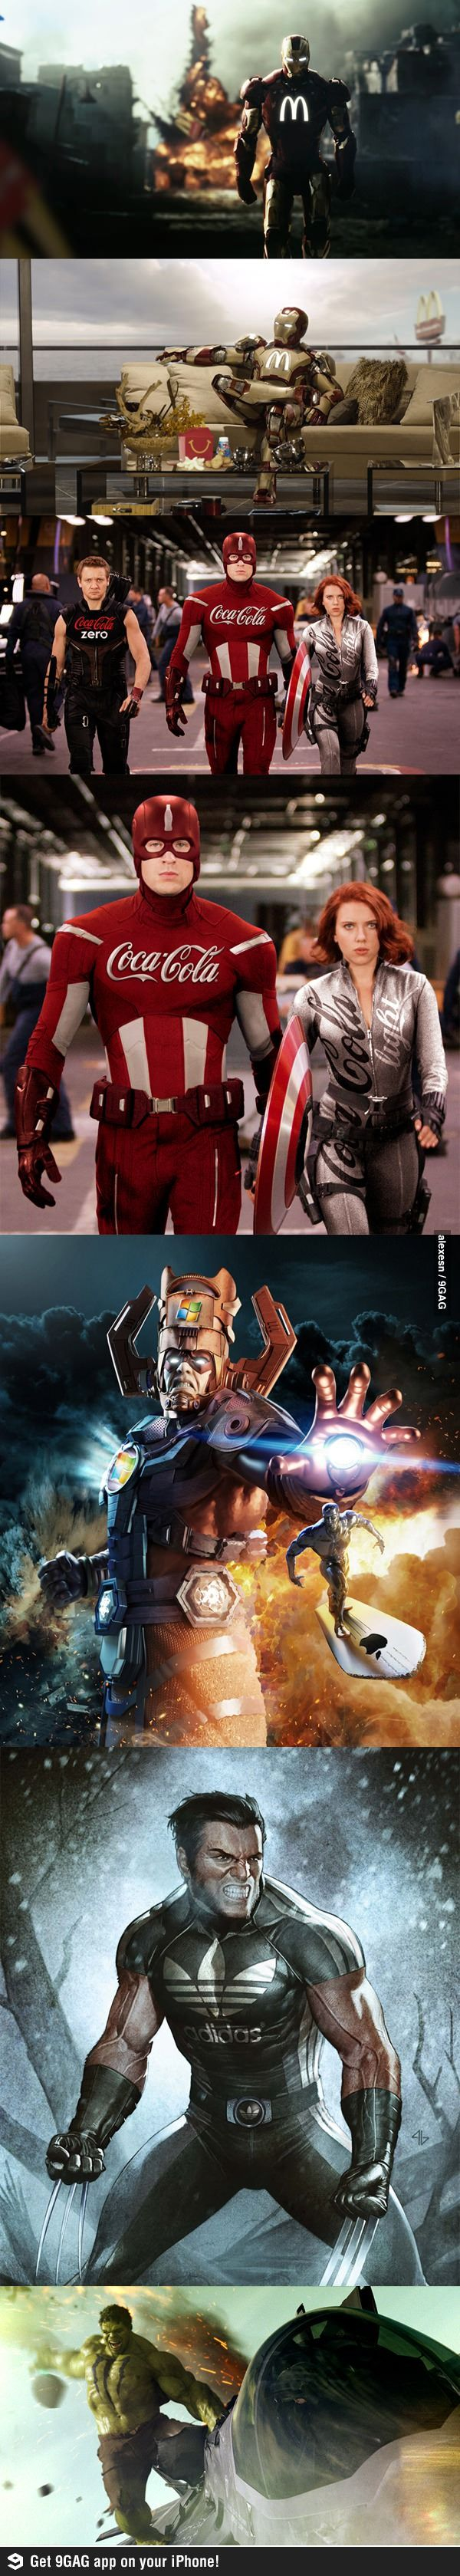 Sponsored heroes. Or, how the Avengers would be if they put a Tiger and Bunny spin on it.